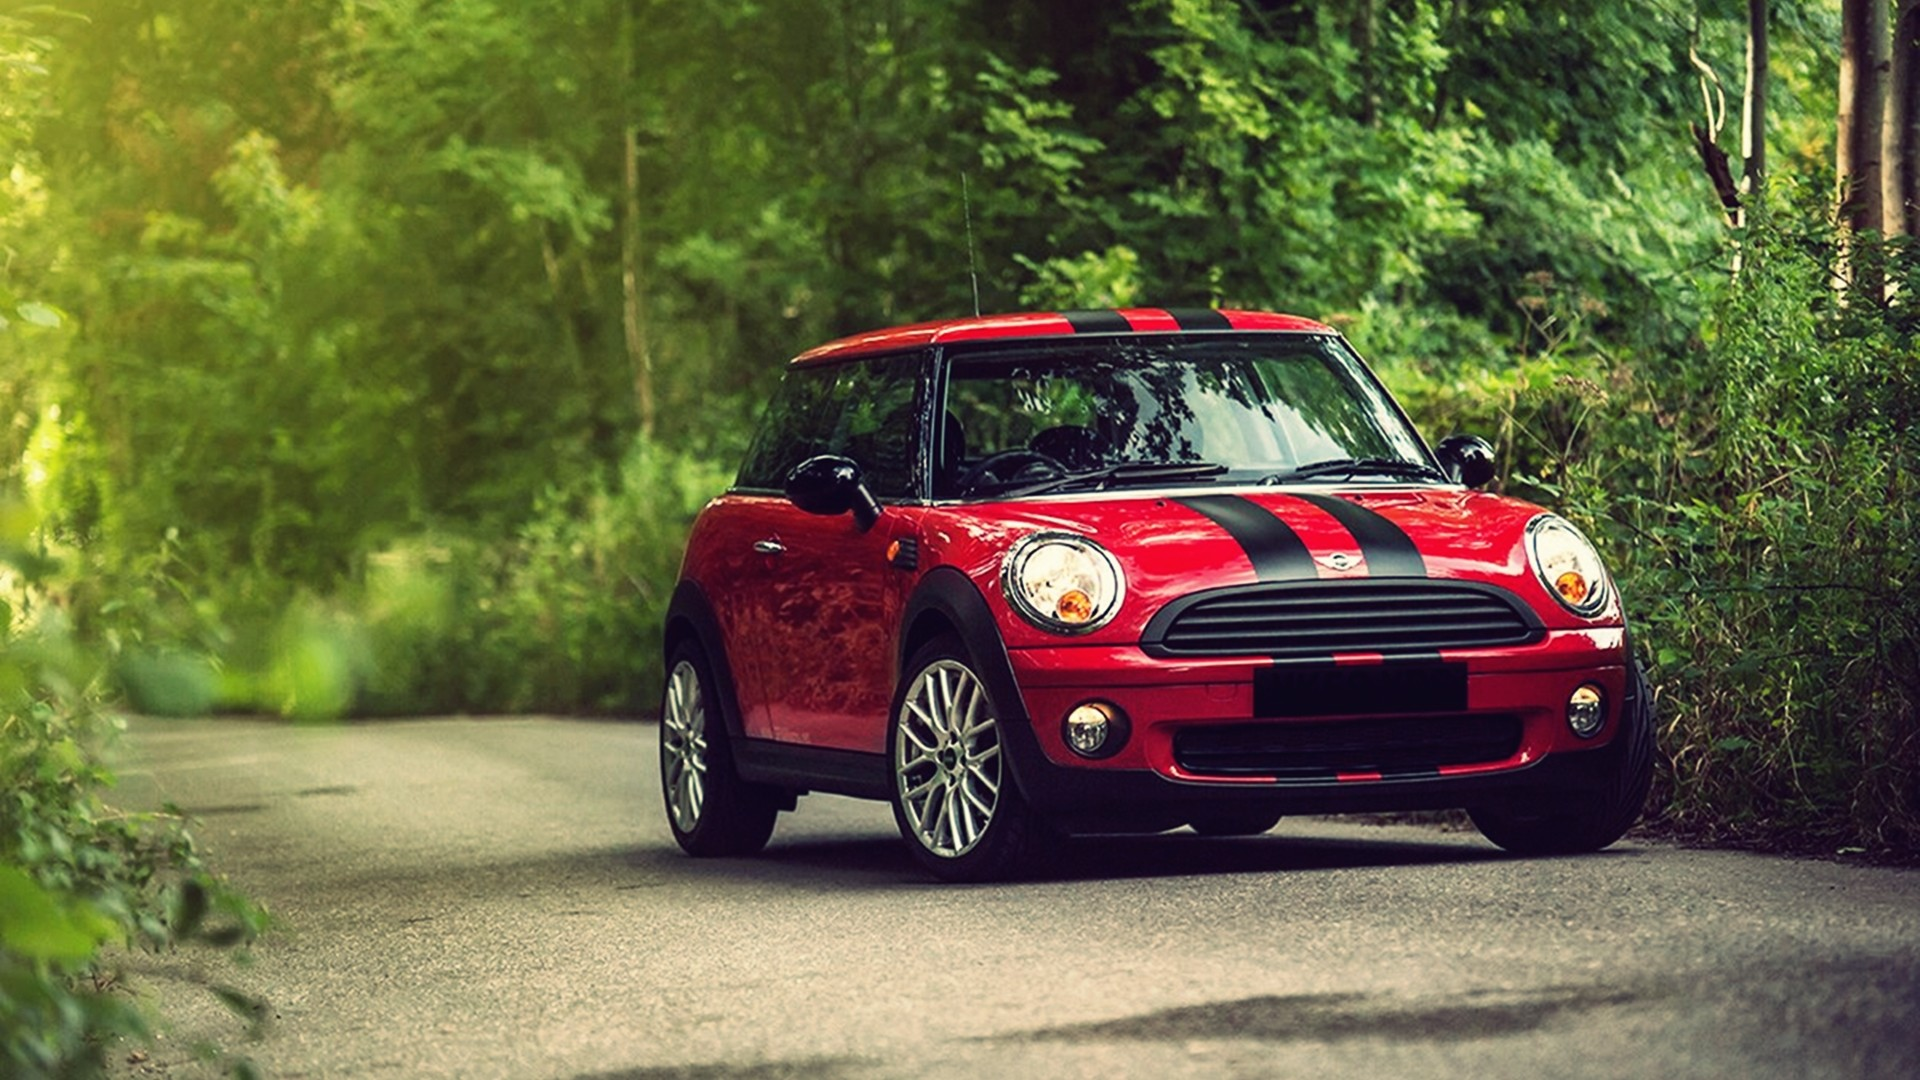 mini cooper wallpaper HD 1920x1080